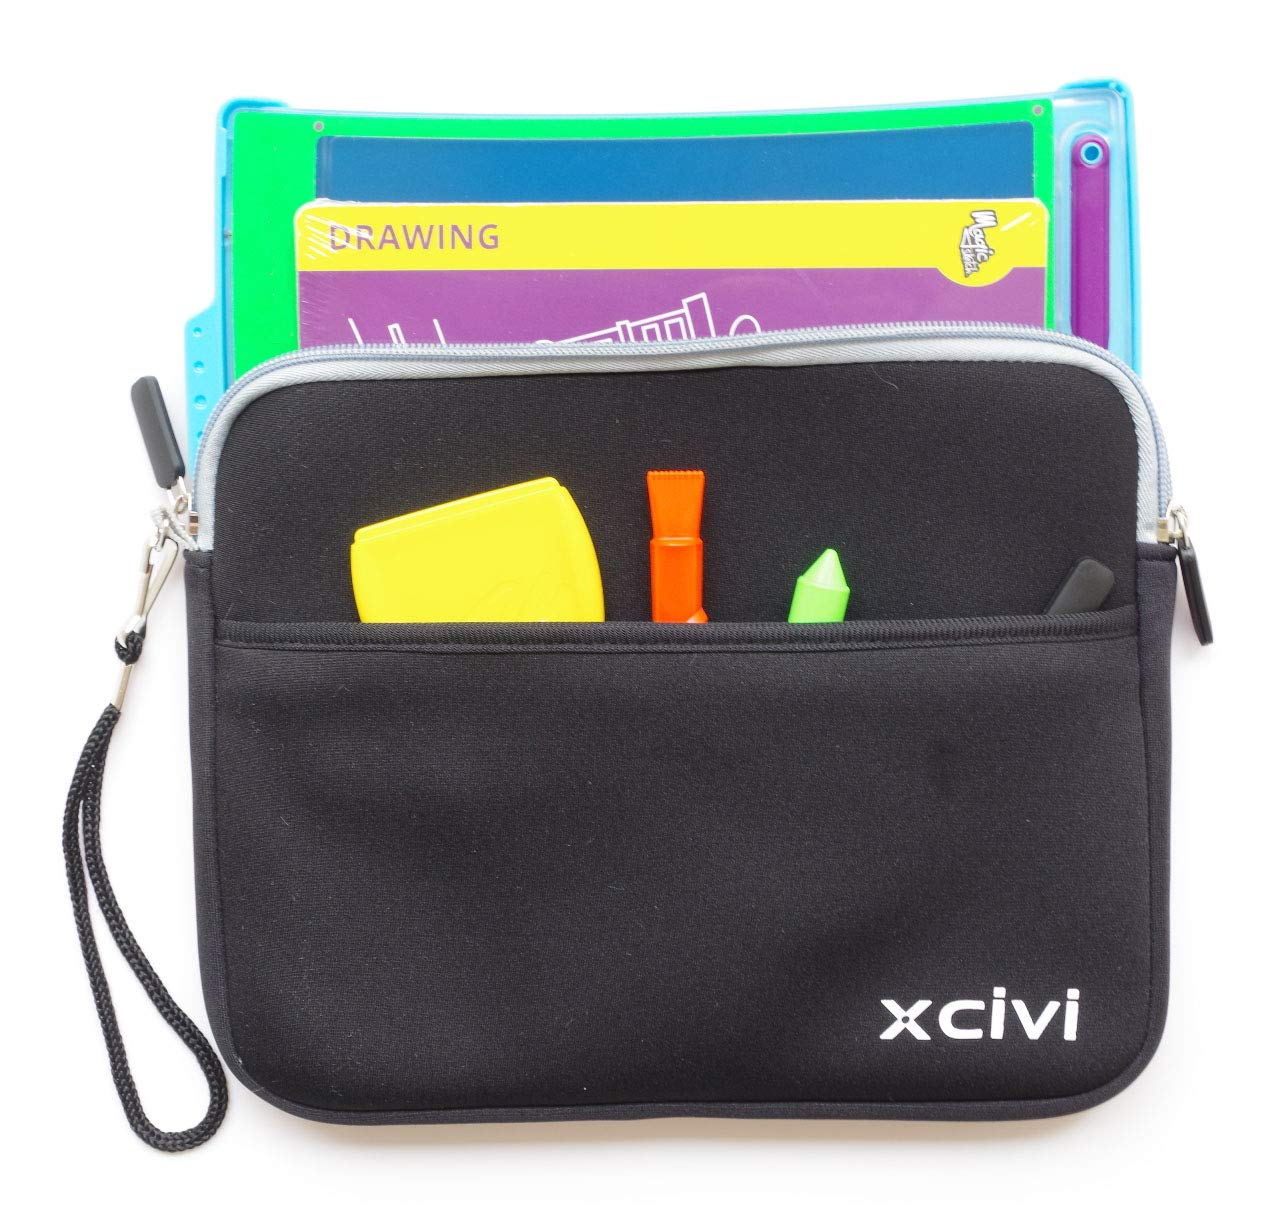 Xcivi Neoprene Protective Carry Case for Boogie Board Magic Sketch Kit Blue